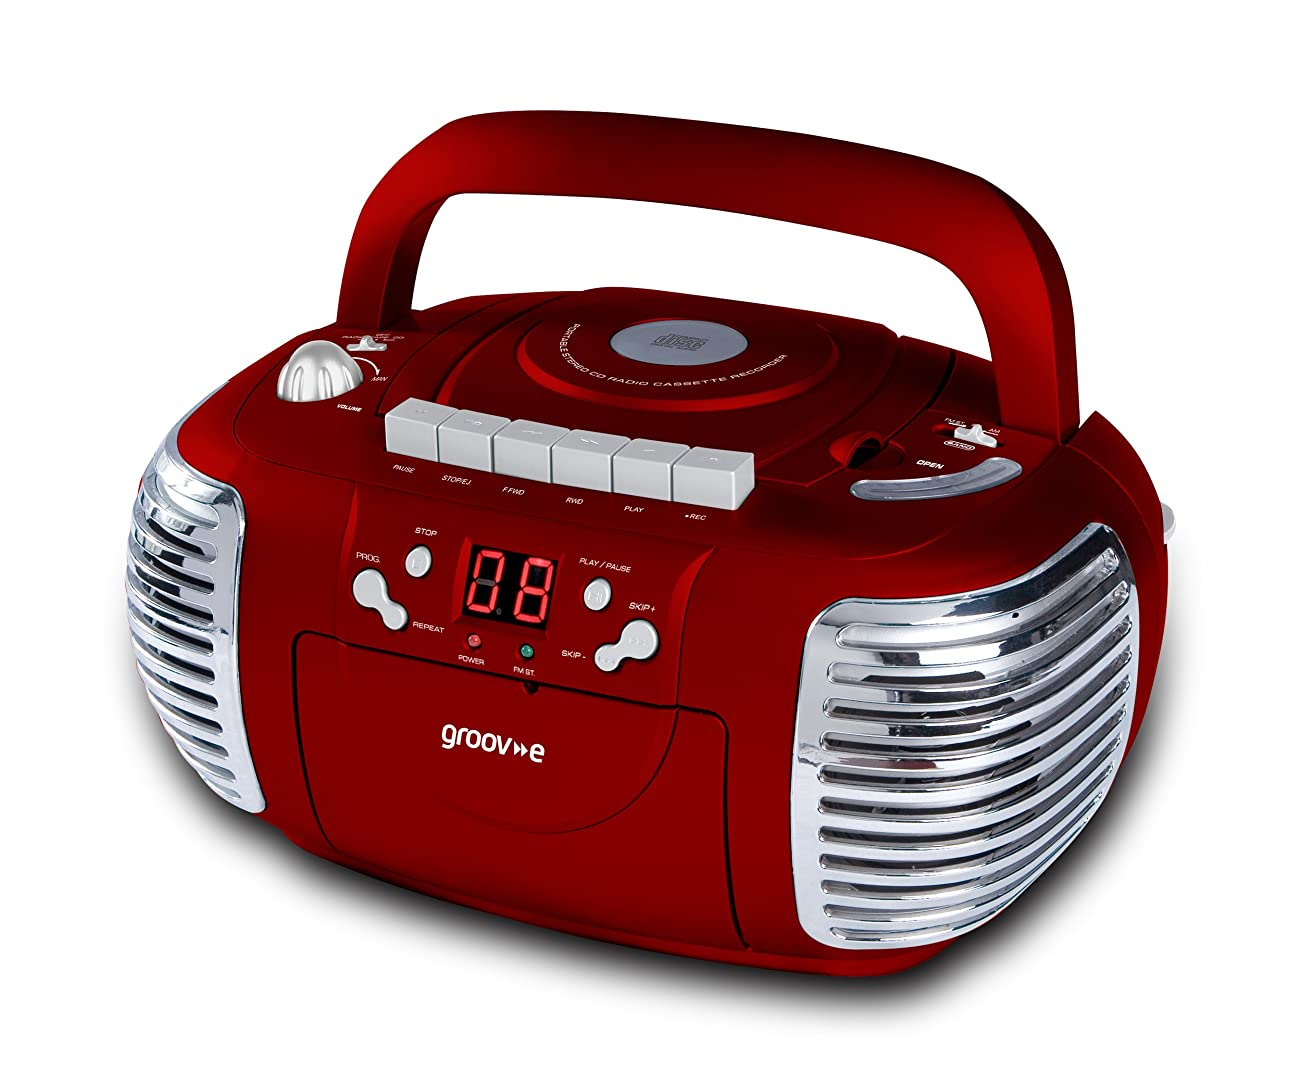 Groov-e Retro Boombox Portable CD, Cassette, Radio Player - Red GVPS813RD 0